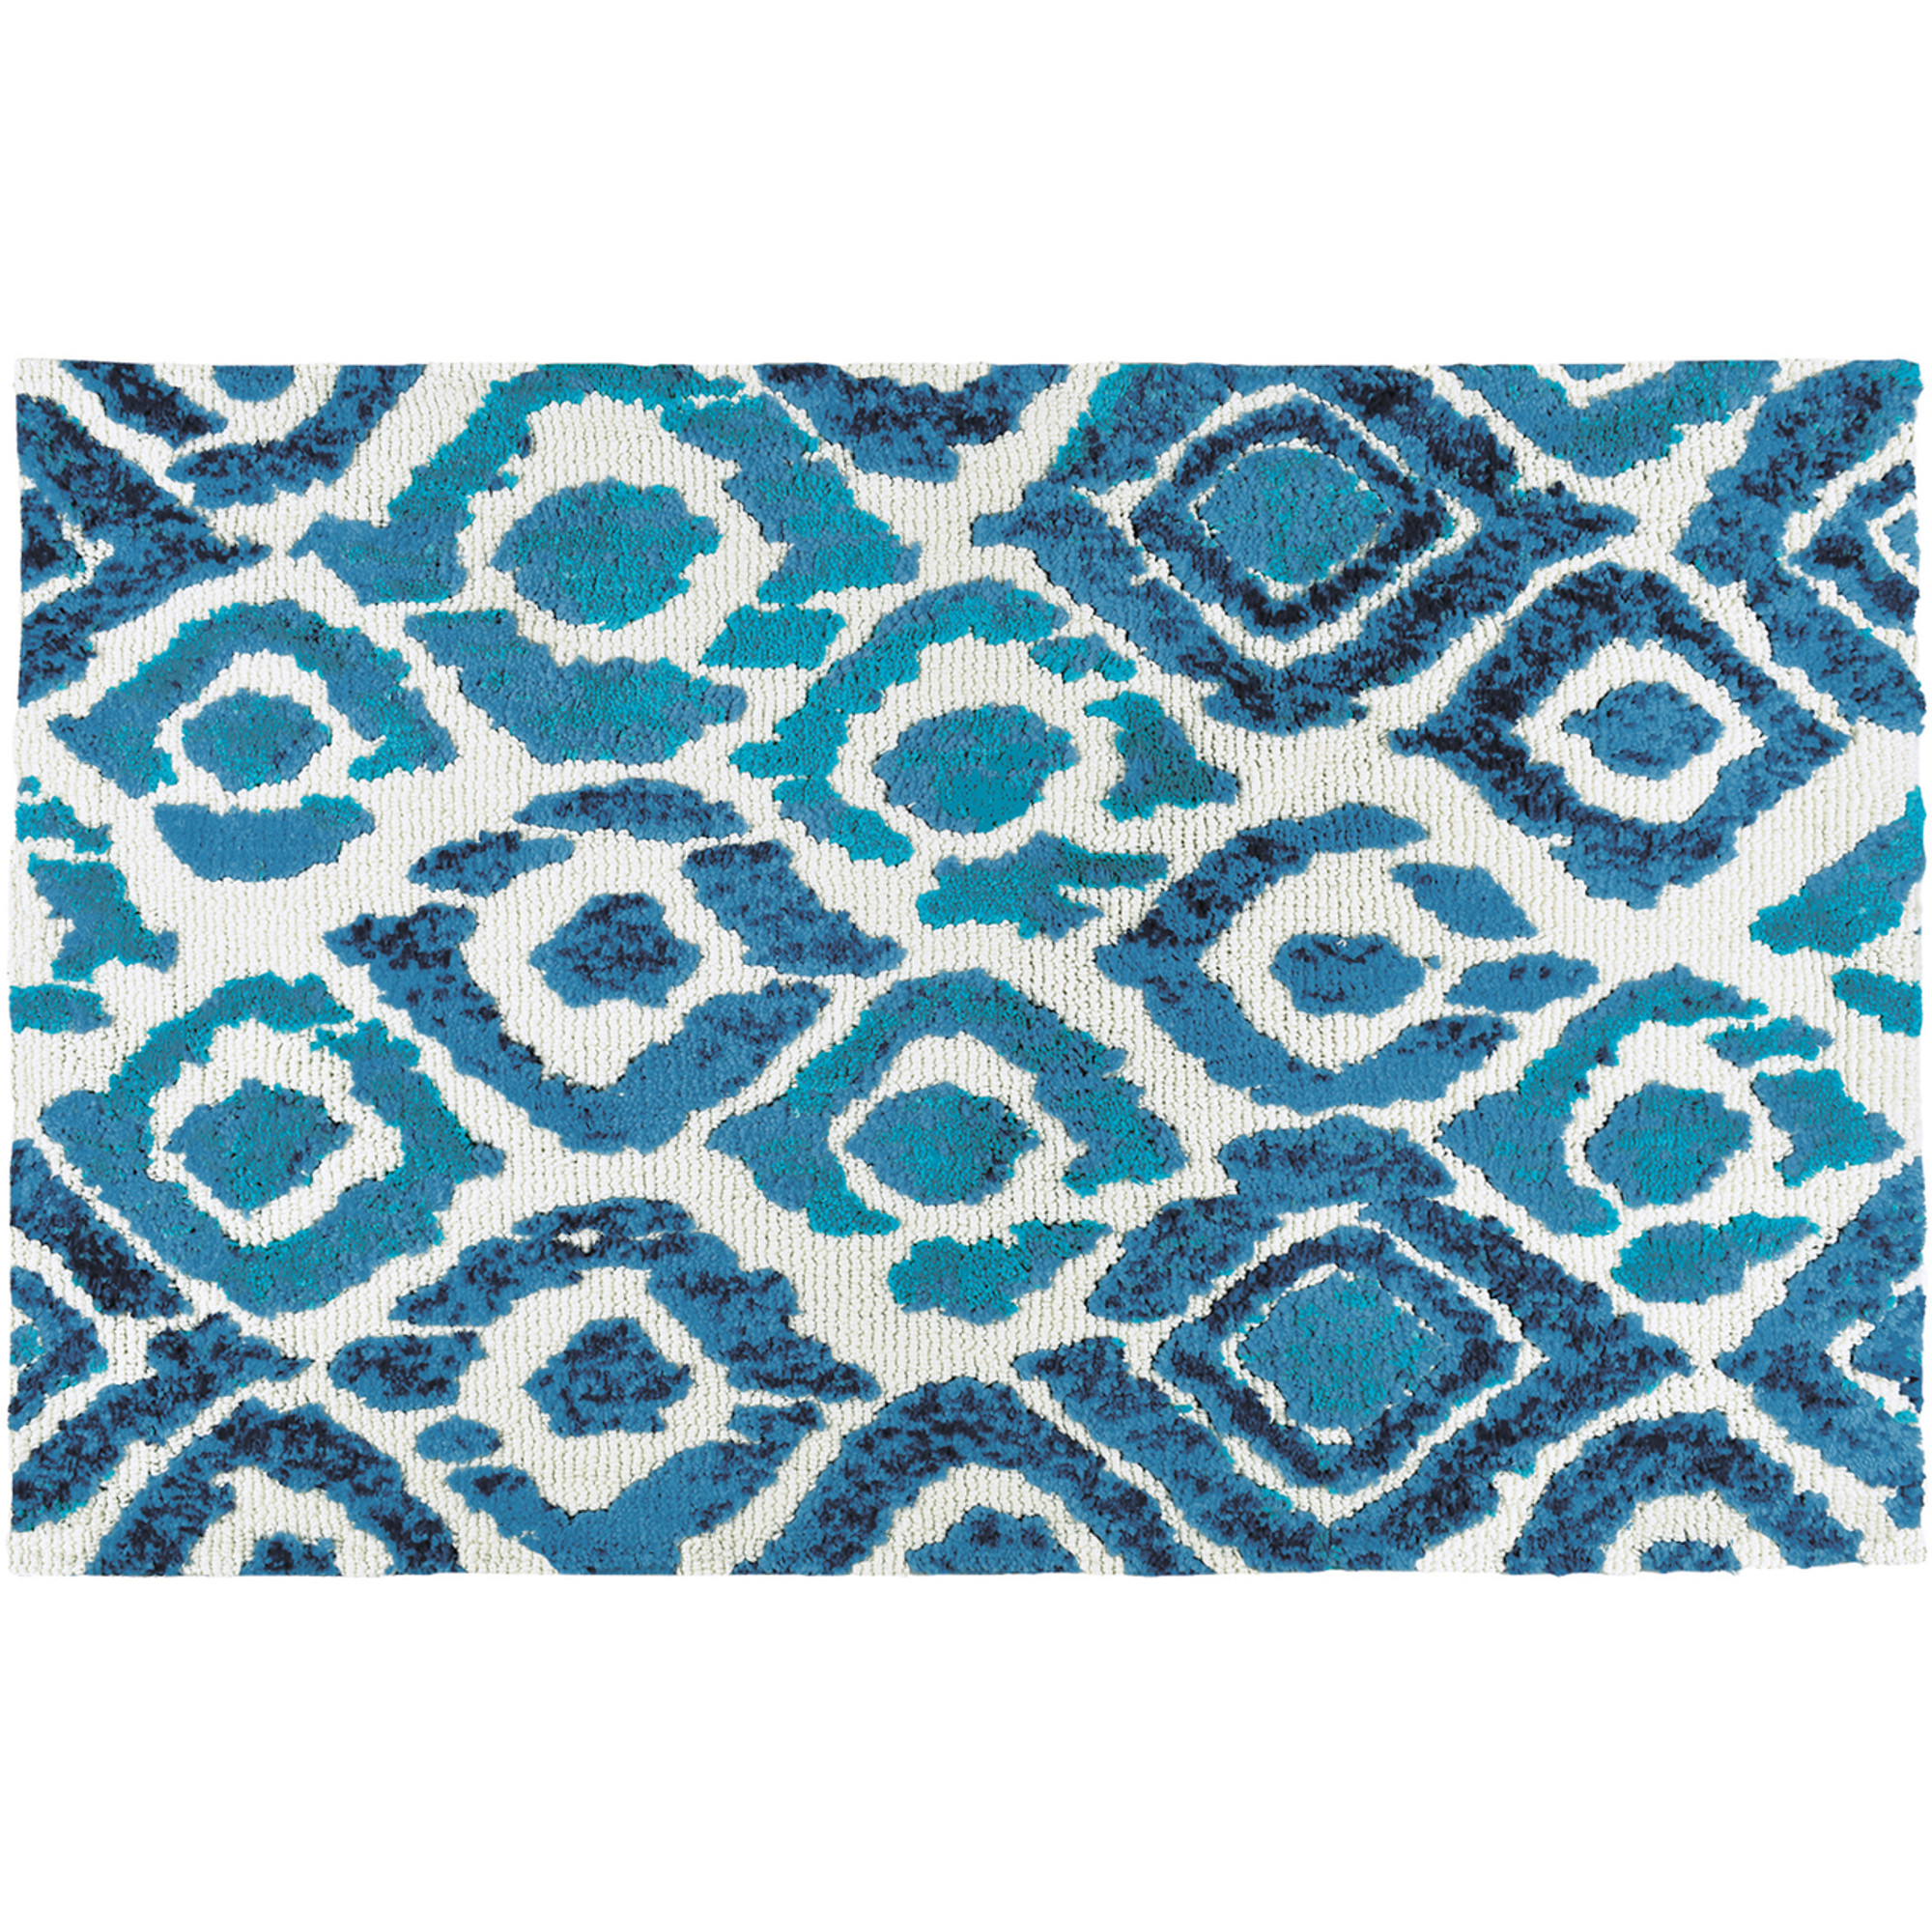 Blue and Green Ikat Simple Spaces